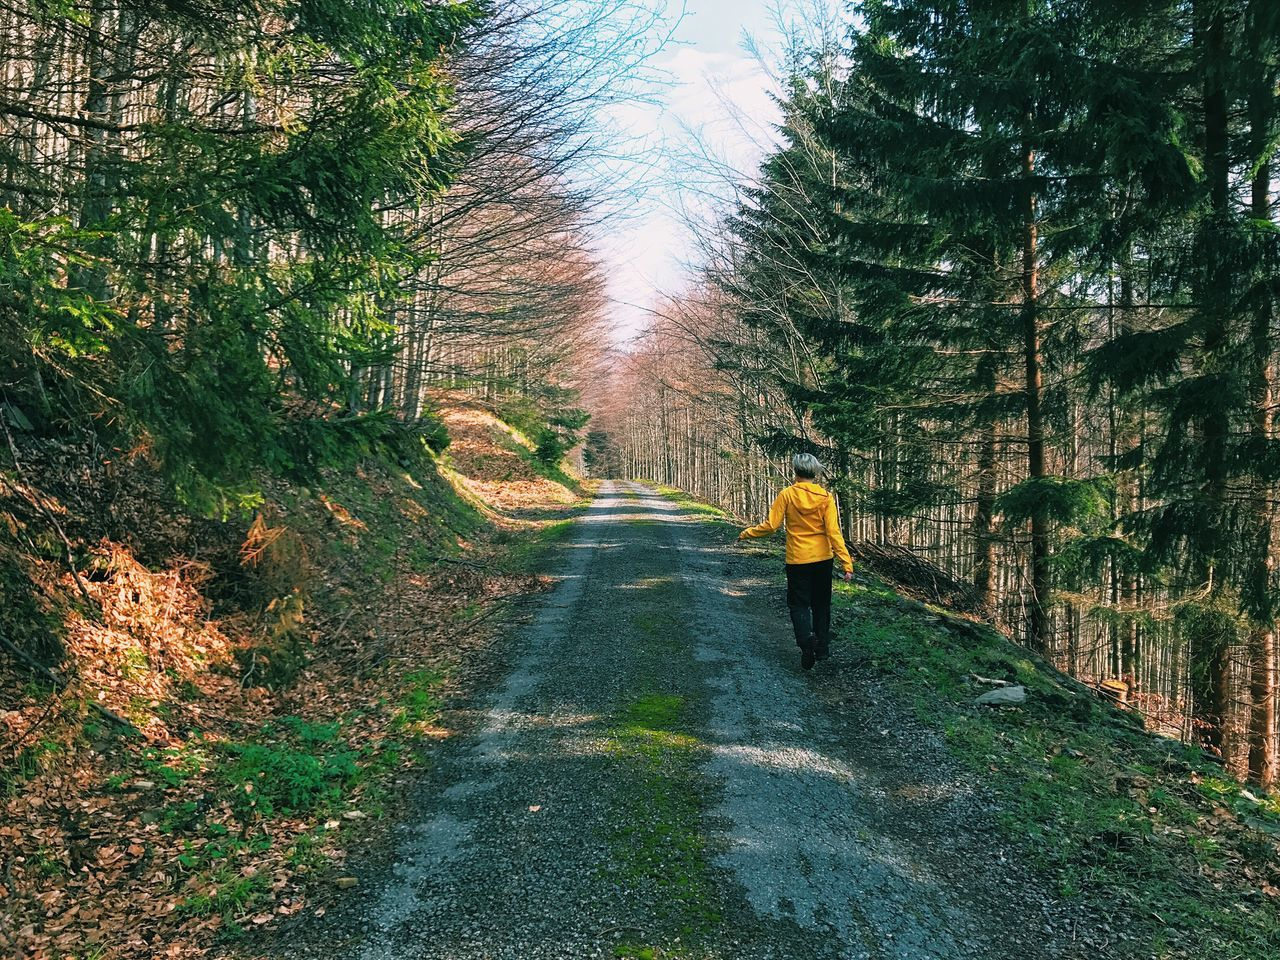 Real People Tree The Way Forward Full Length Rear View One Person Walking Nature Road Day Leisure Activity Lifestyles Forest Outdoors Women Beauty In Nature Men Sky Adult People